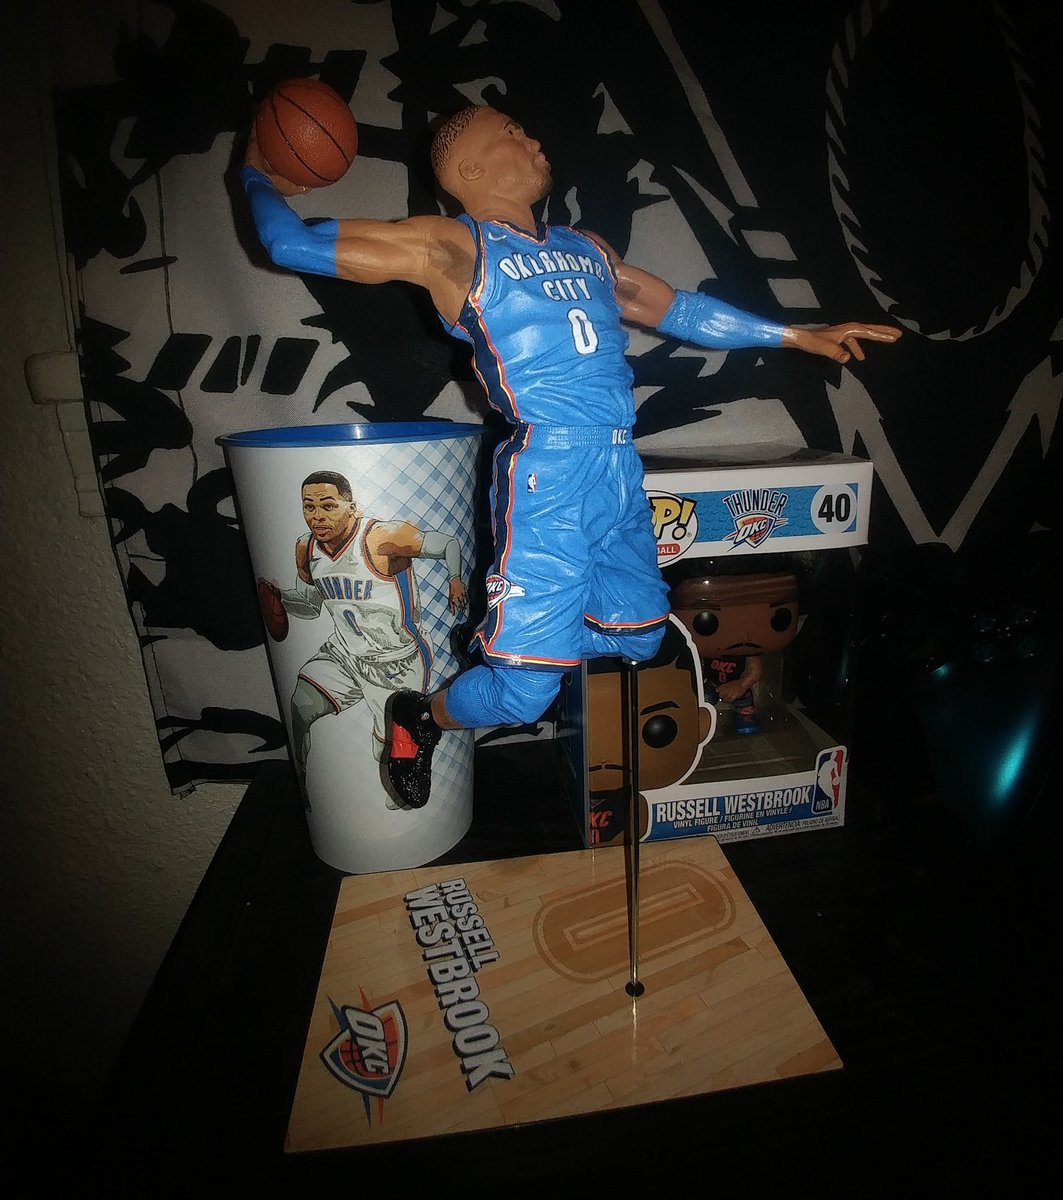 This figure of the G.O.A.T. is so dope! 🔥🏀 #ThunderUp #whynot #RussellWestbrook  @russwest44 @okcthunder